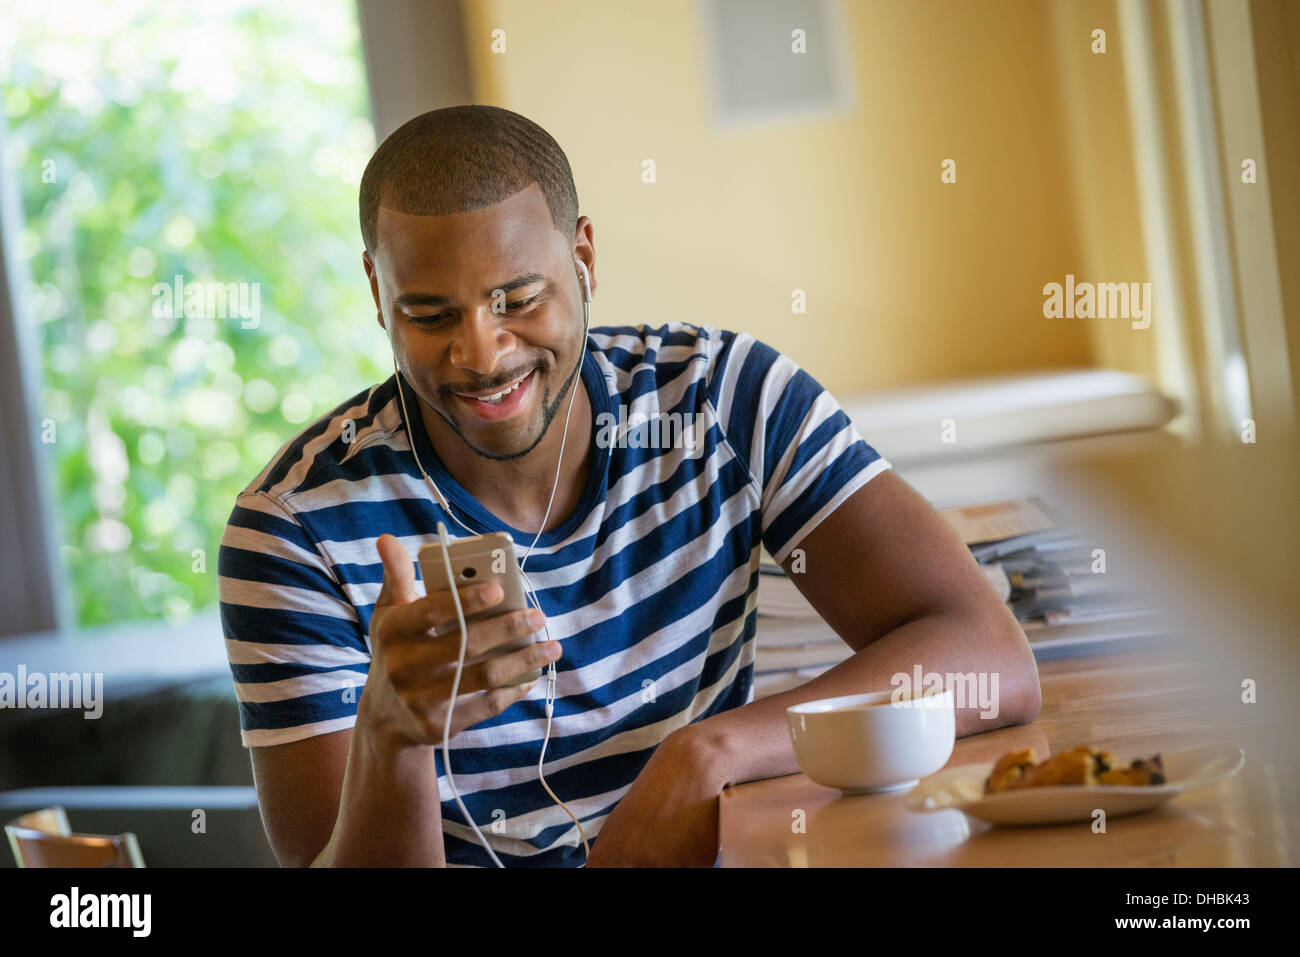 A man using a smart phone, or personal music player, wearing headphones. - Stock Image